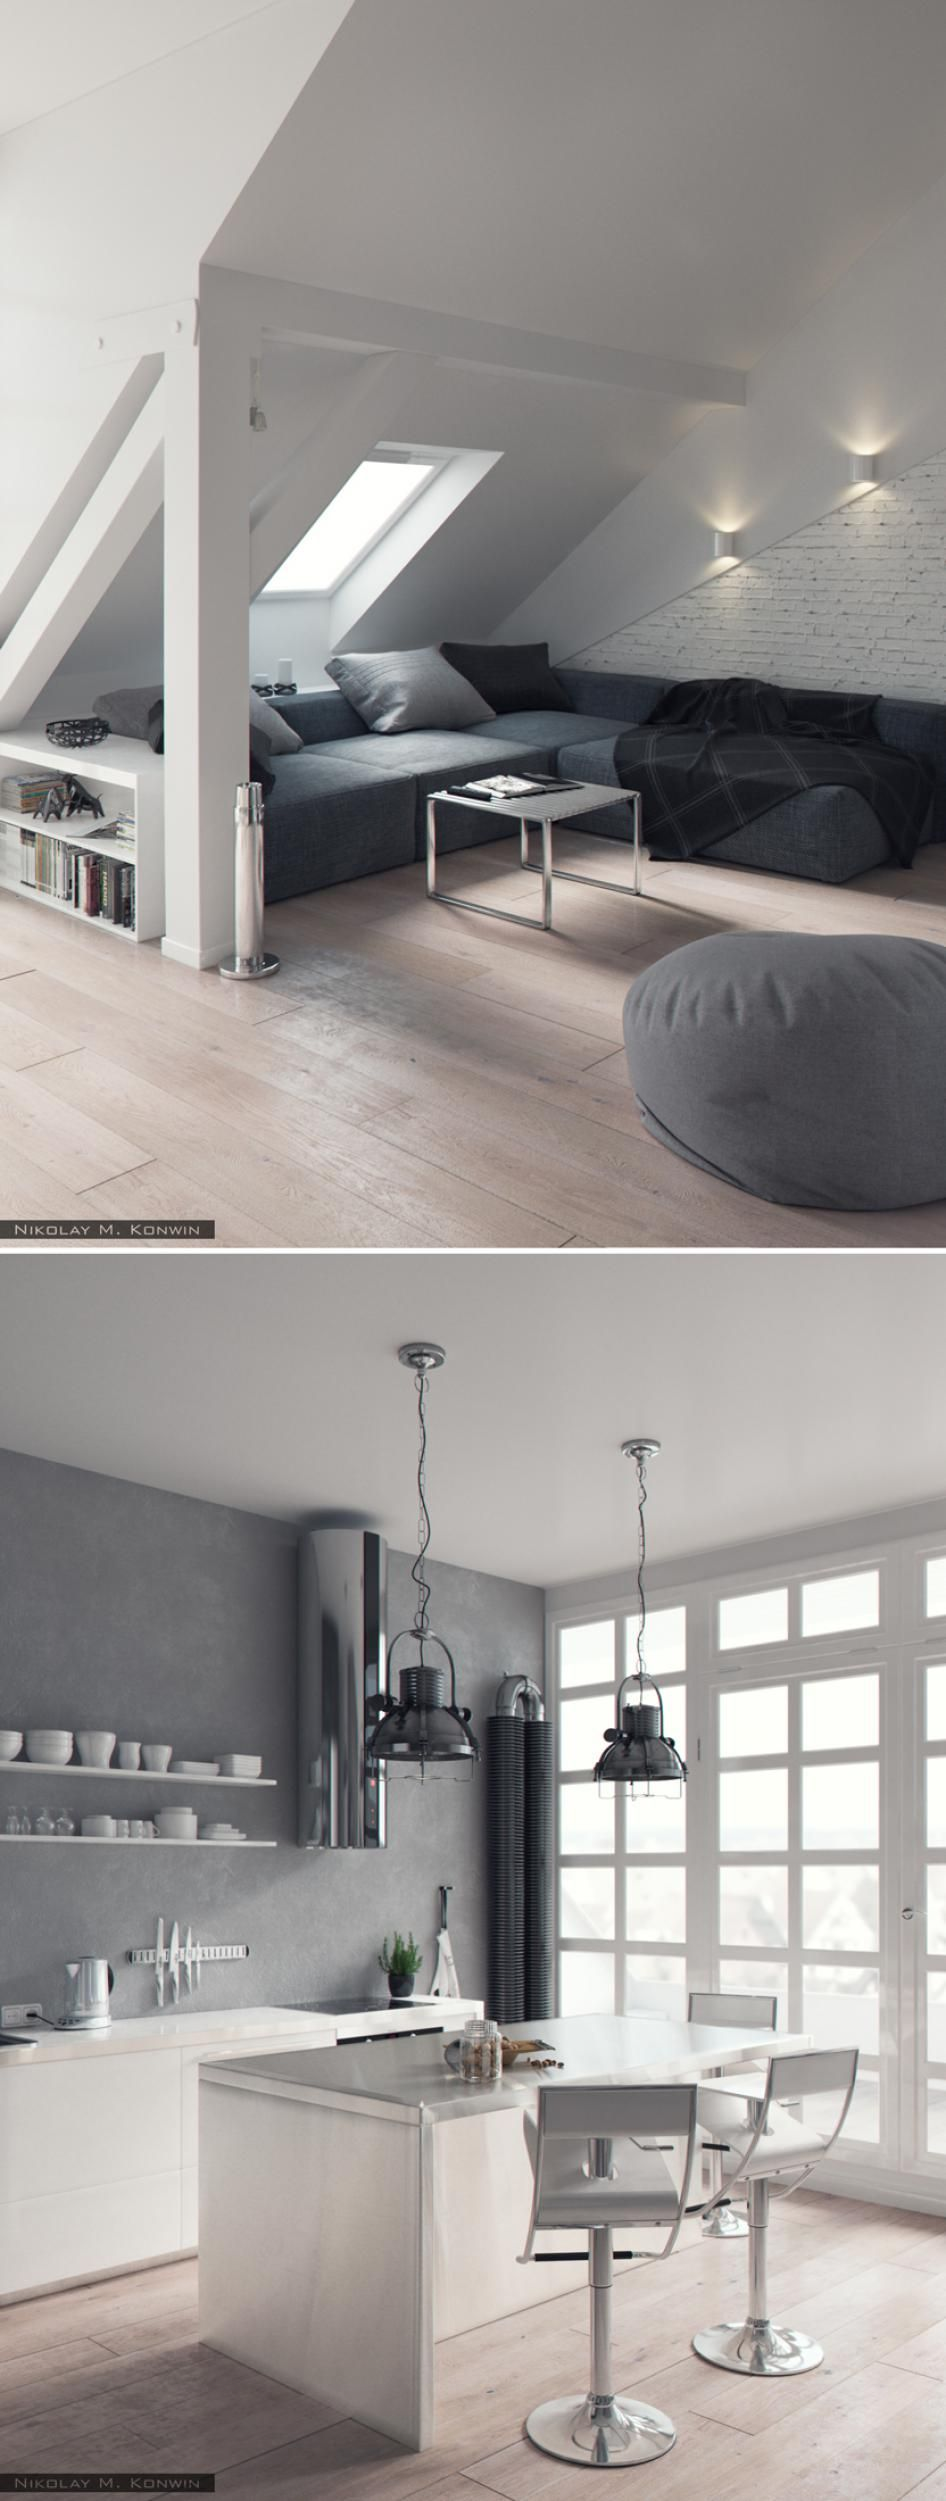 Dachbodenausbau Ideen Like The Living Room Style Layout For The Attic Making It Home